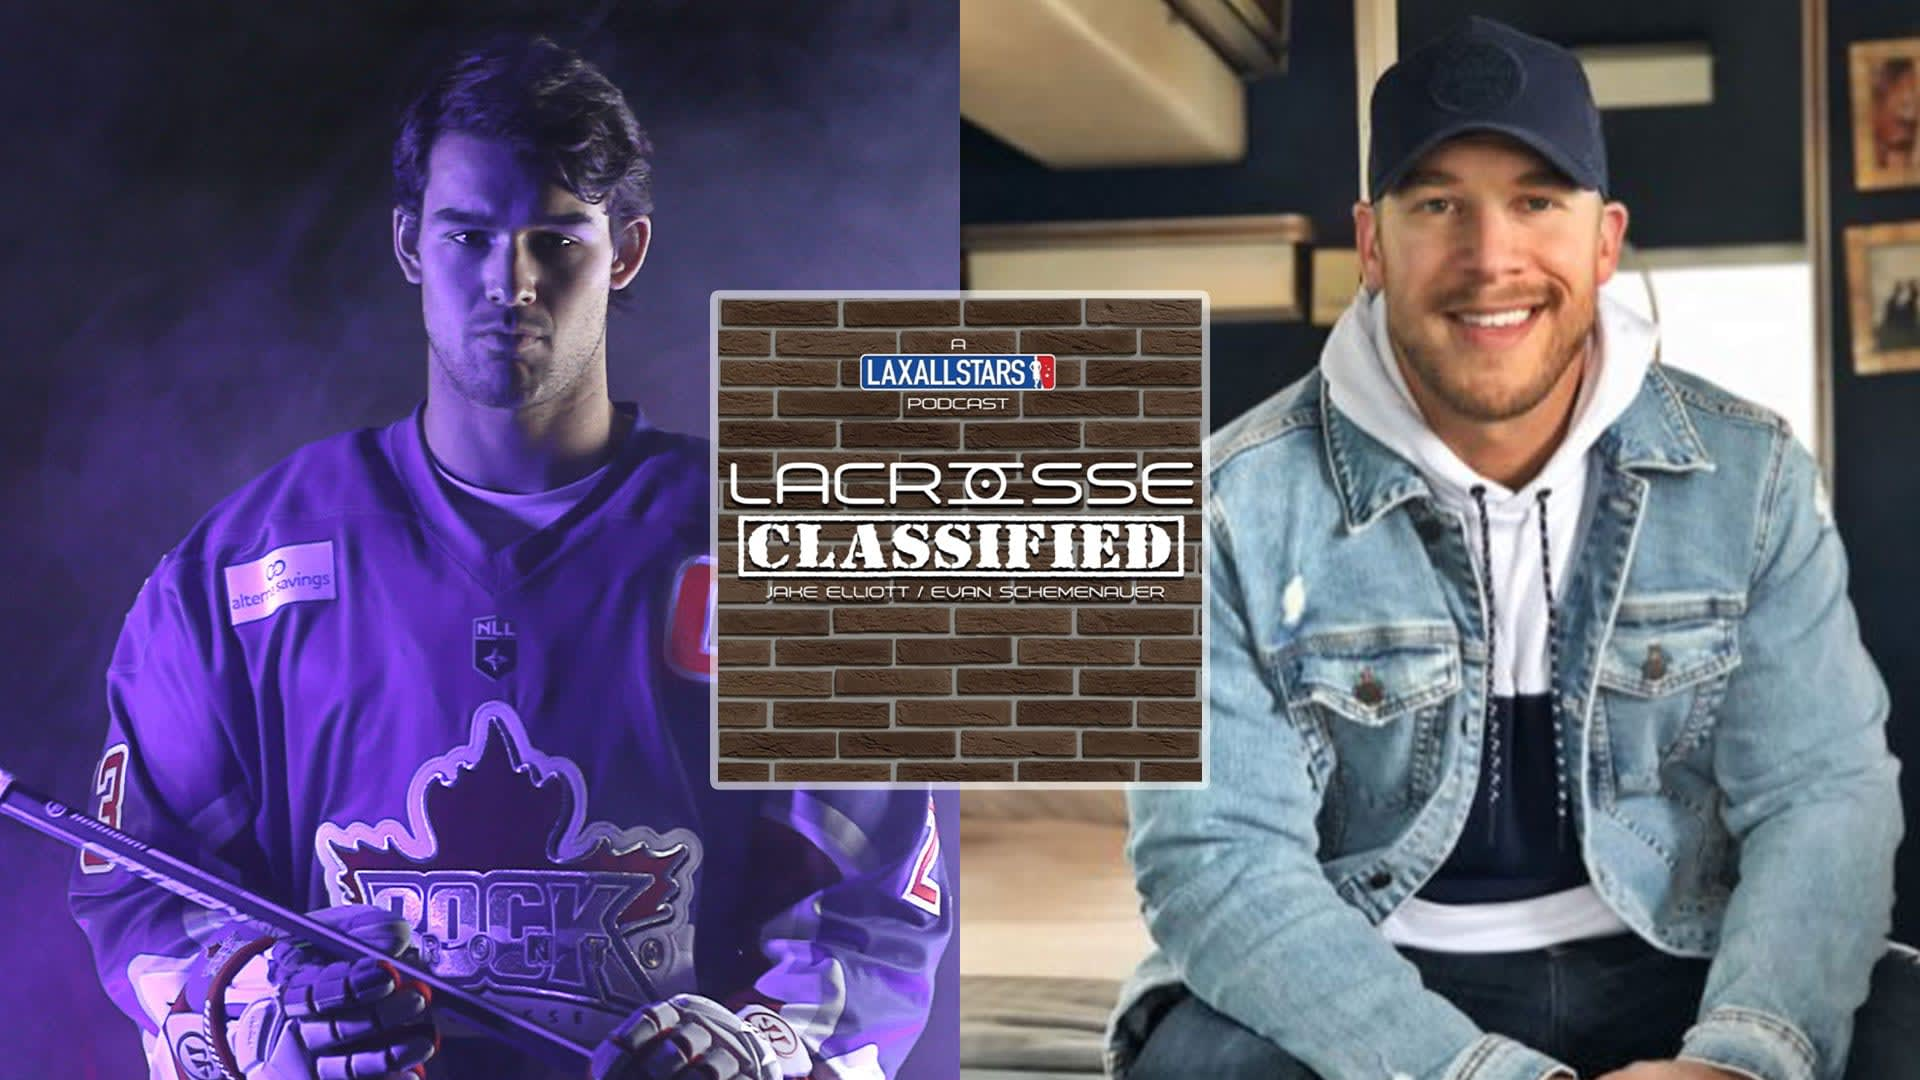 challen rogers tyson geick - lacrosse classified podcast, ep 7